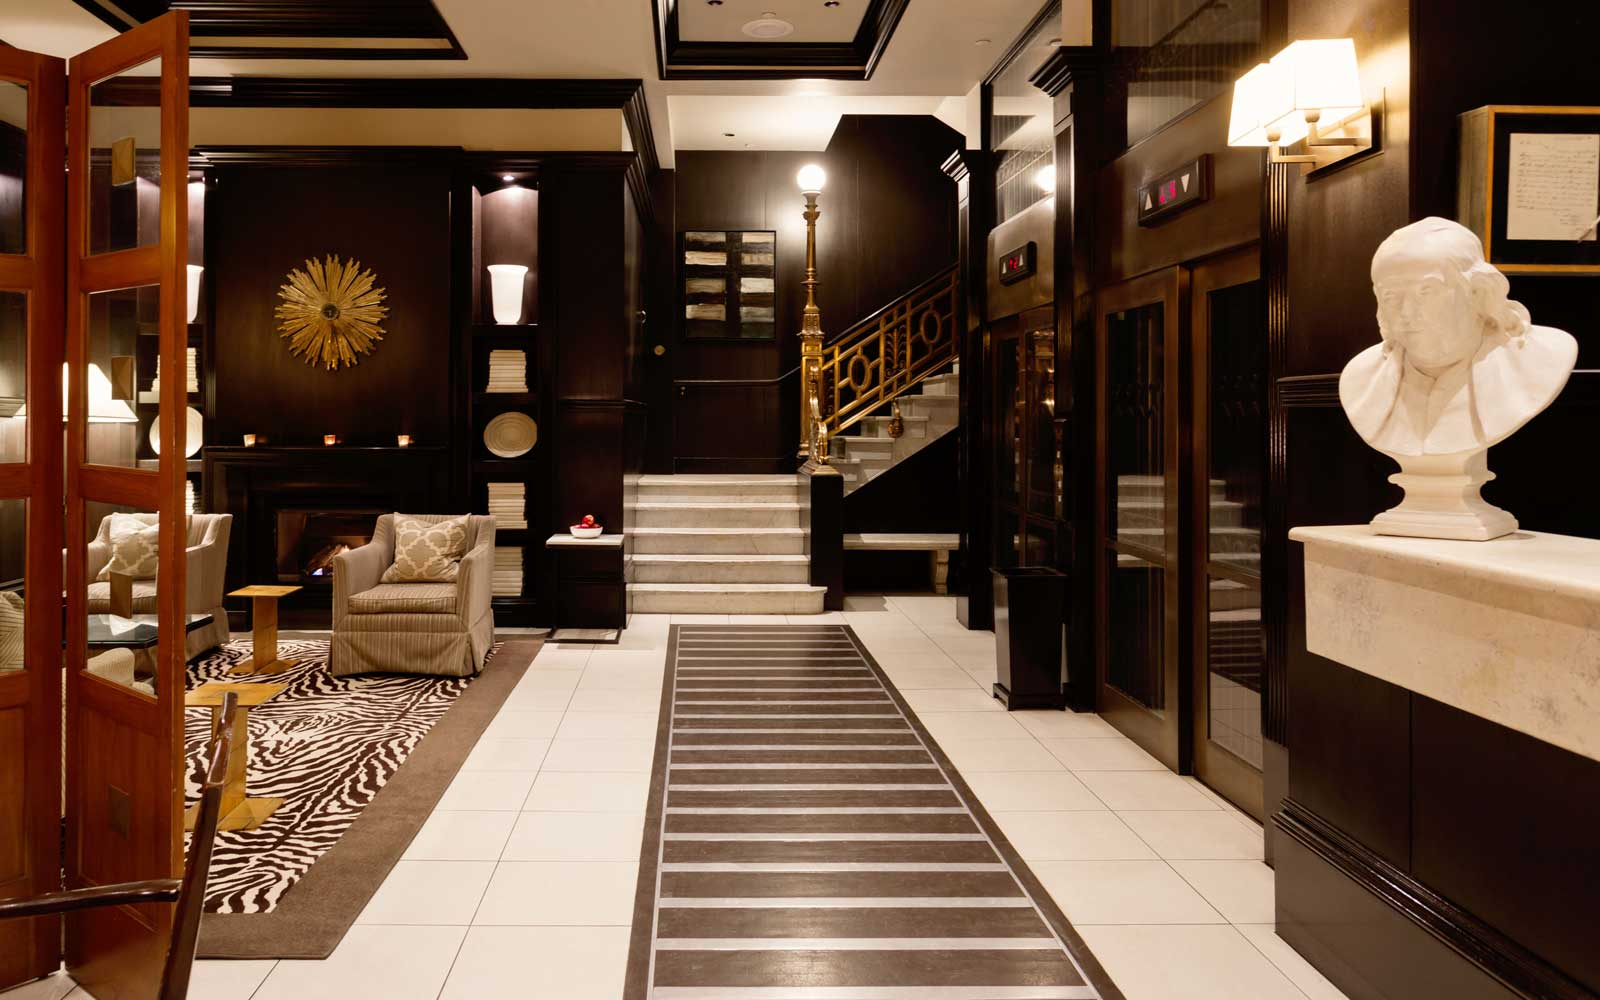 Lobby of the XV Beacon Hotel